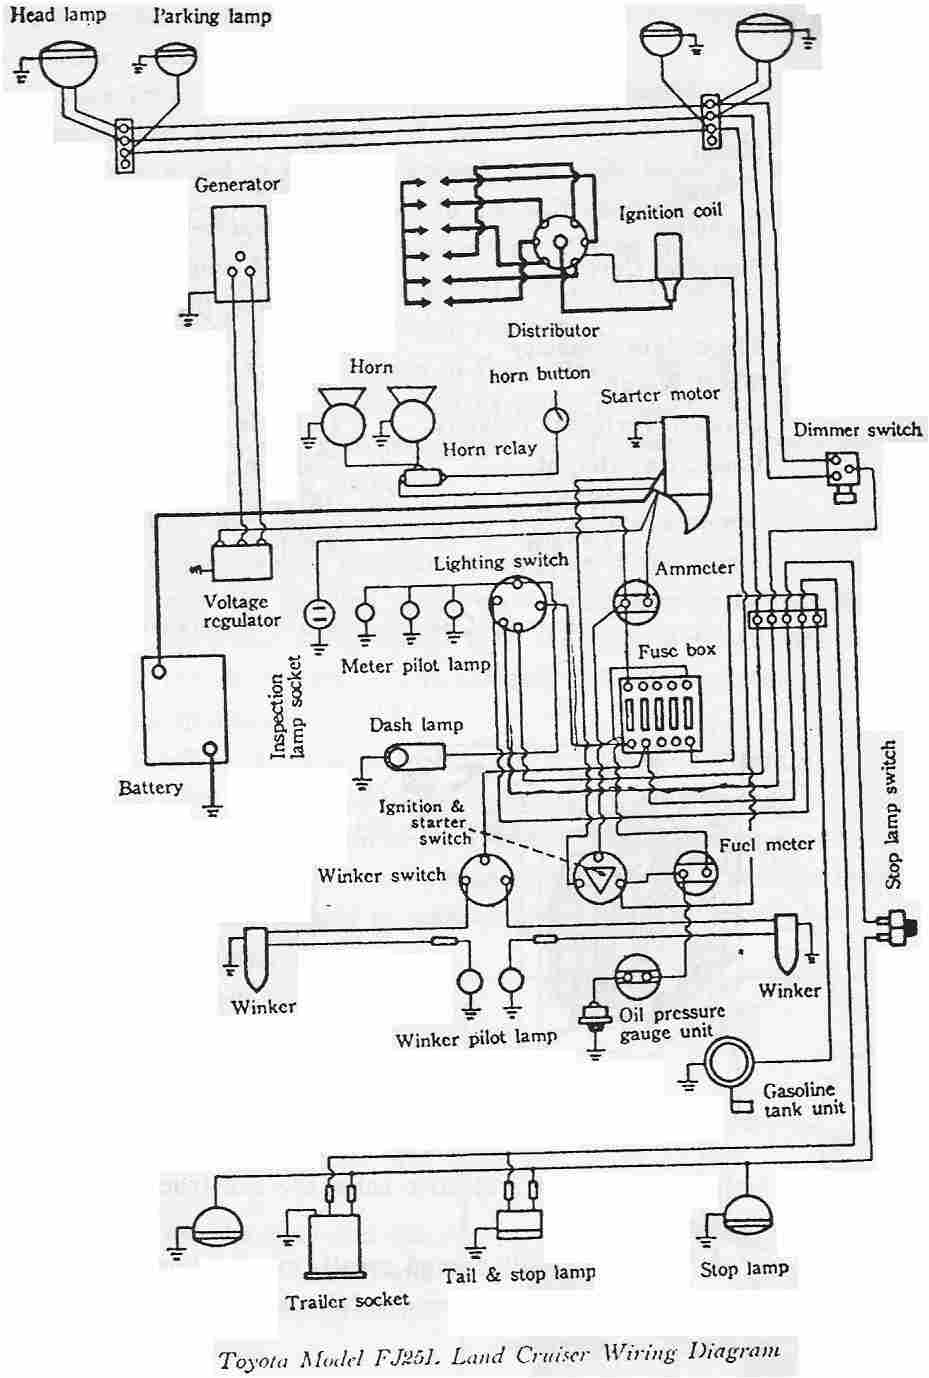 Toyota Electrical Wiring Diagram: 1989 Toyota Pickup Radio Wiring Diagram. 1989. Free Wiring ,Design